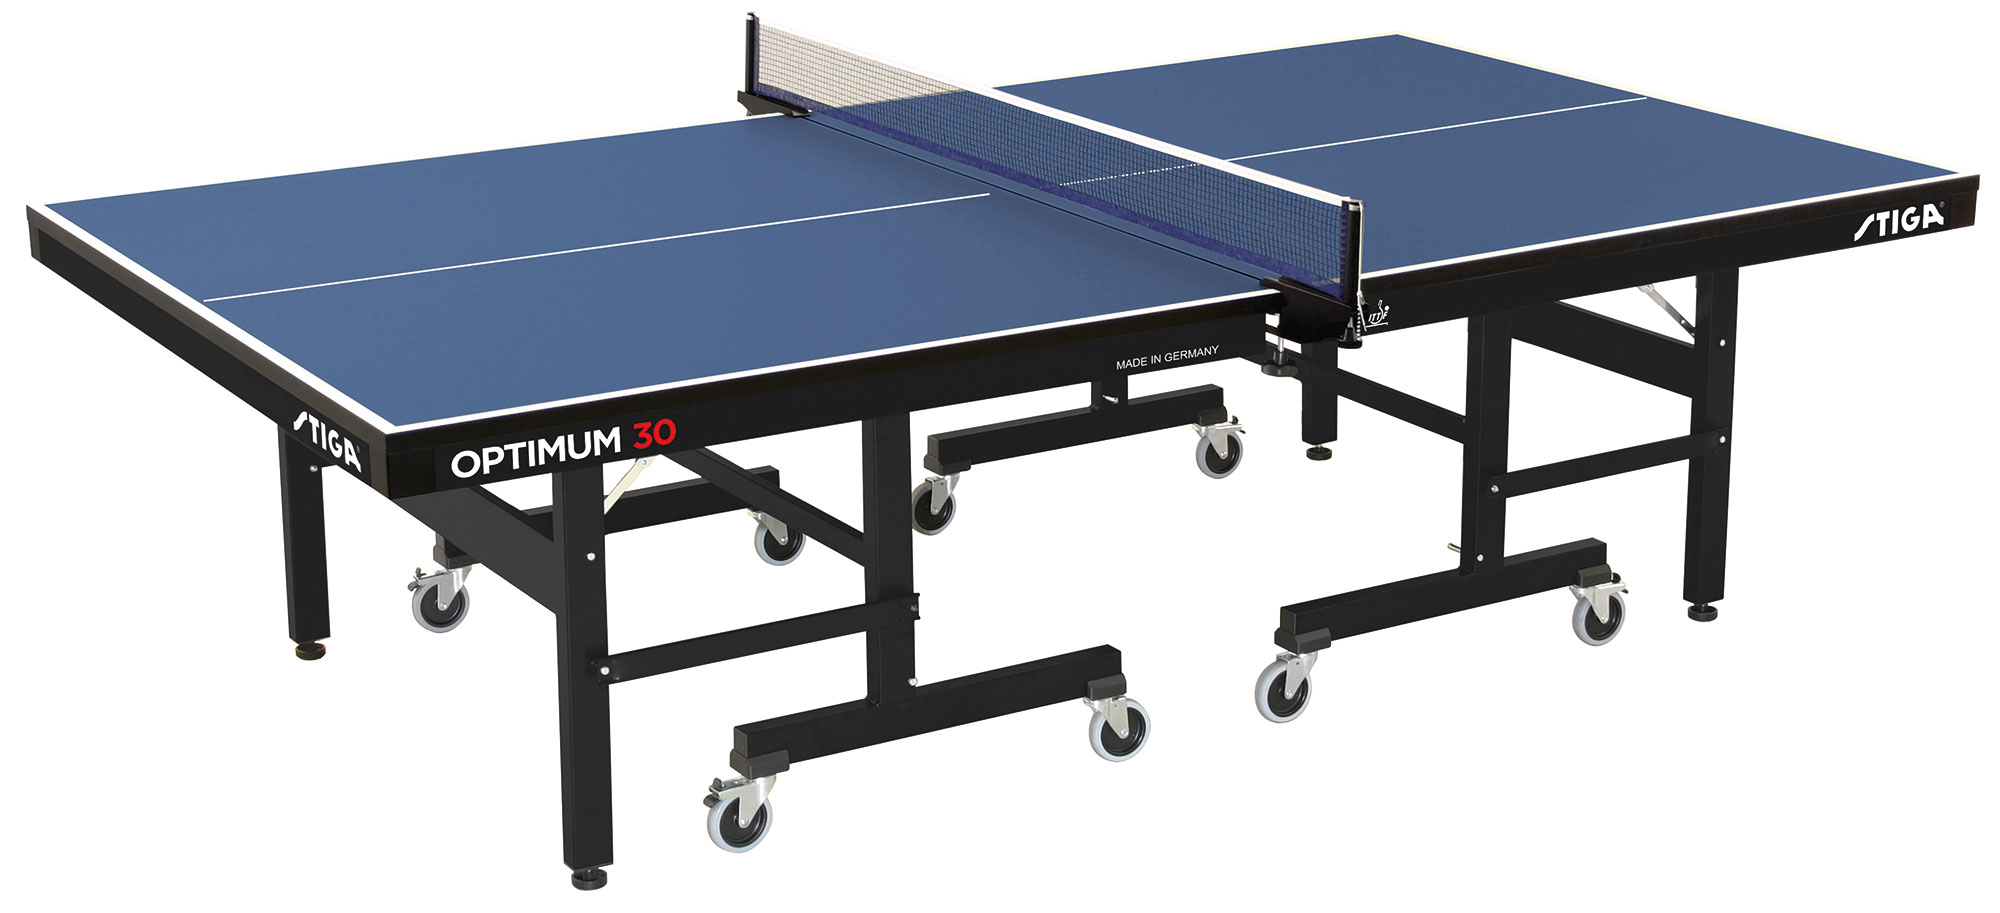 Thorntons Table Tennistable Tennis Table Stiga Optimum